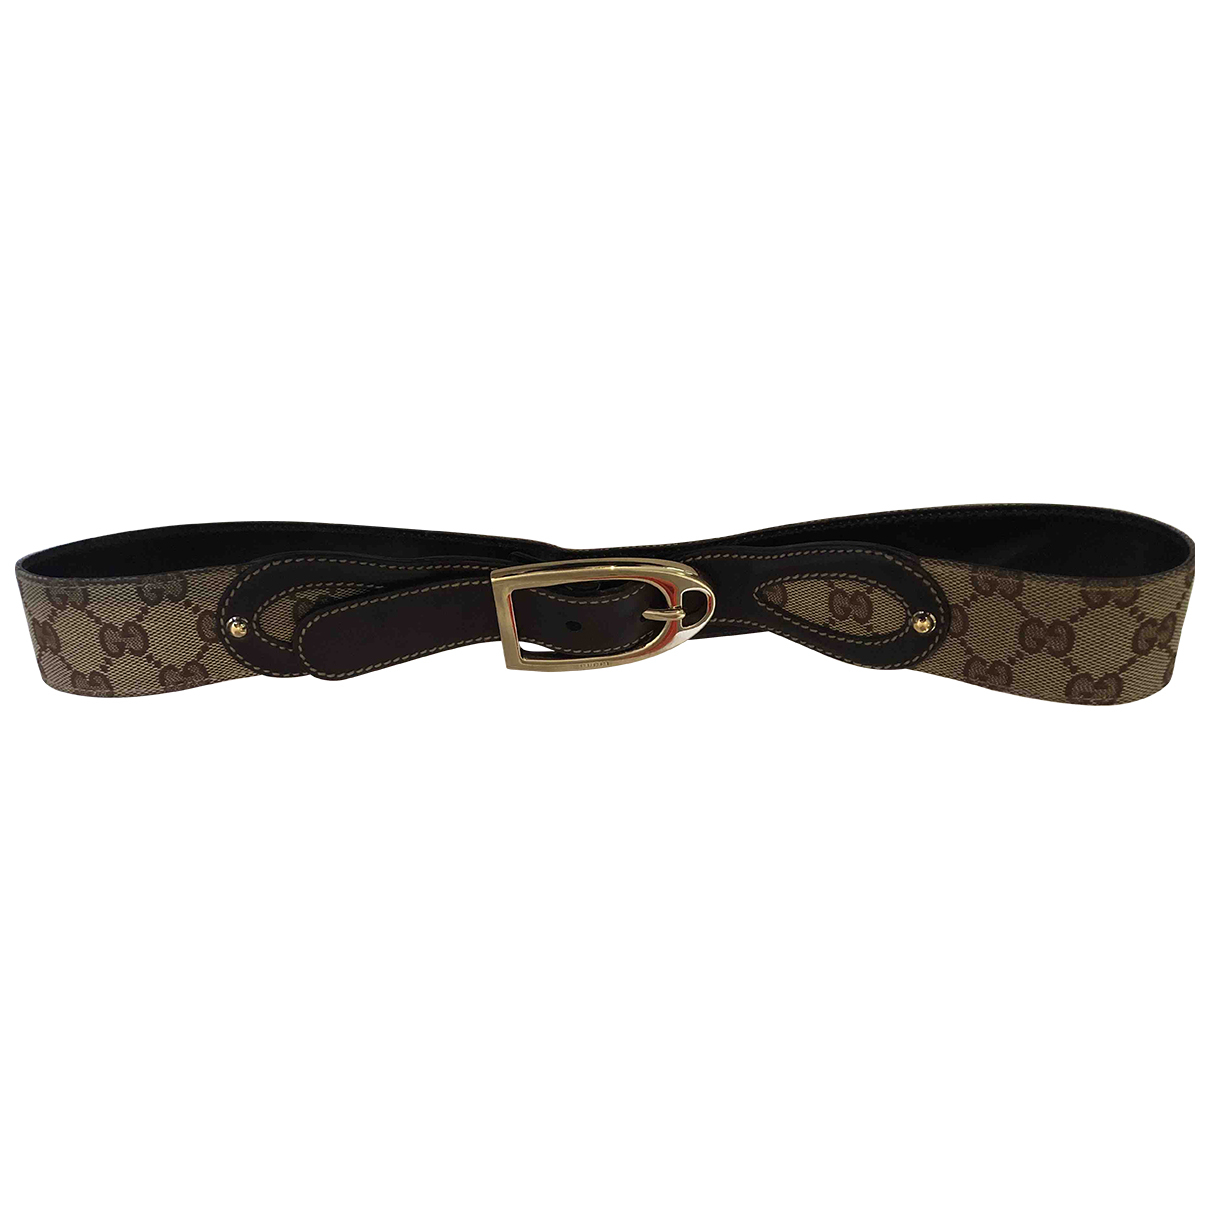 Gucci N Beige Cloth belt for Women 90 cm